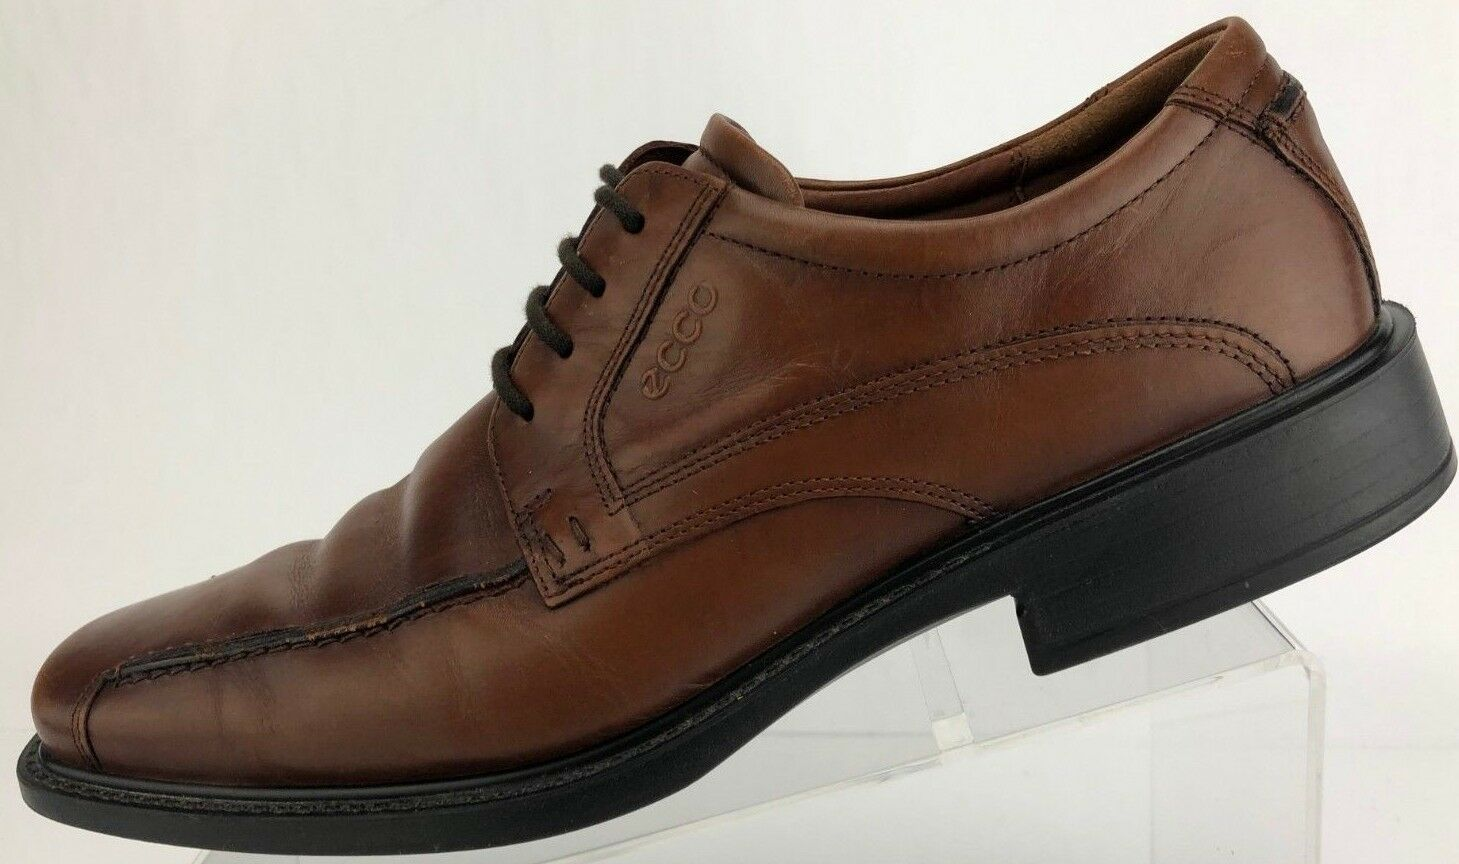 Ecco Bicycle Dress schuhe Lace Up braun Bicycle Ecco Toe Leather Oxford Derby Mens 43, 9,9.5 6d7a46